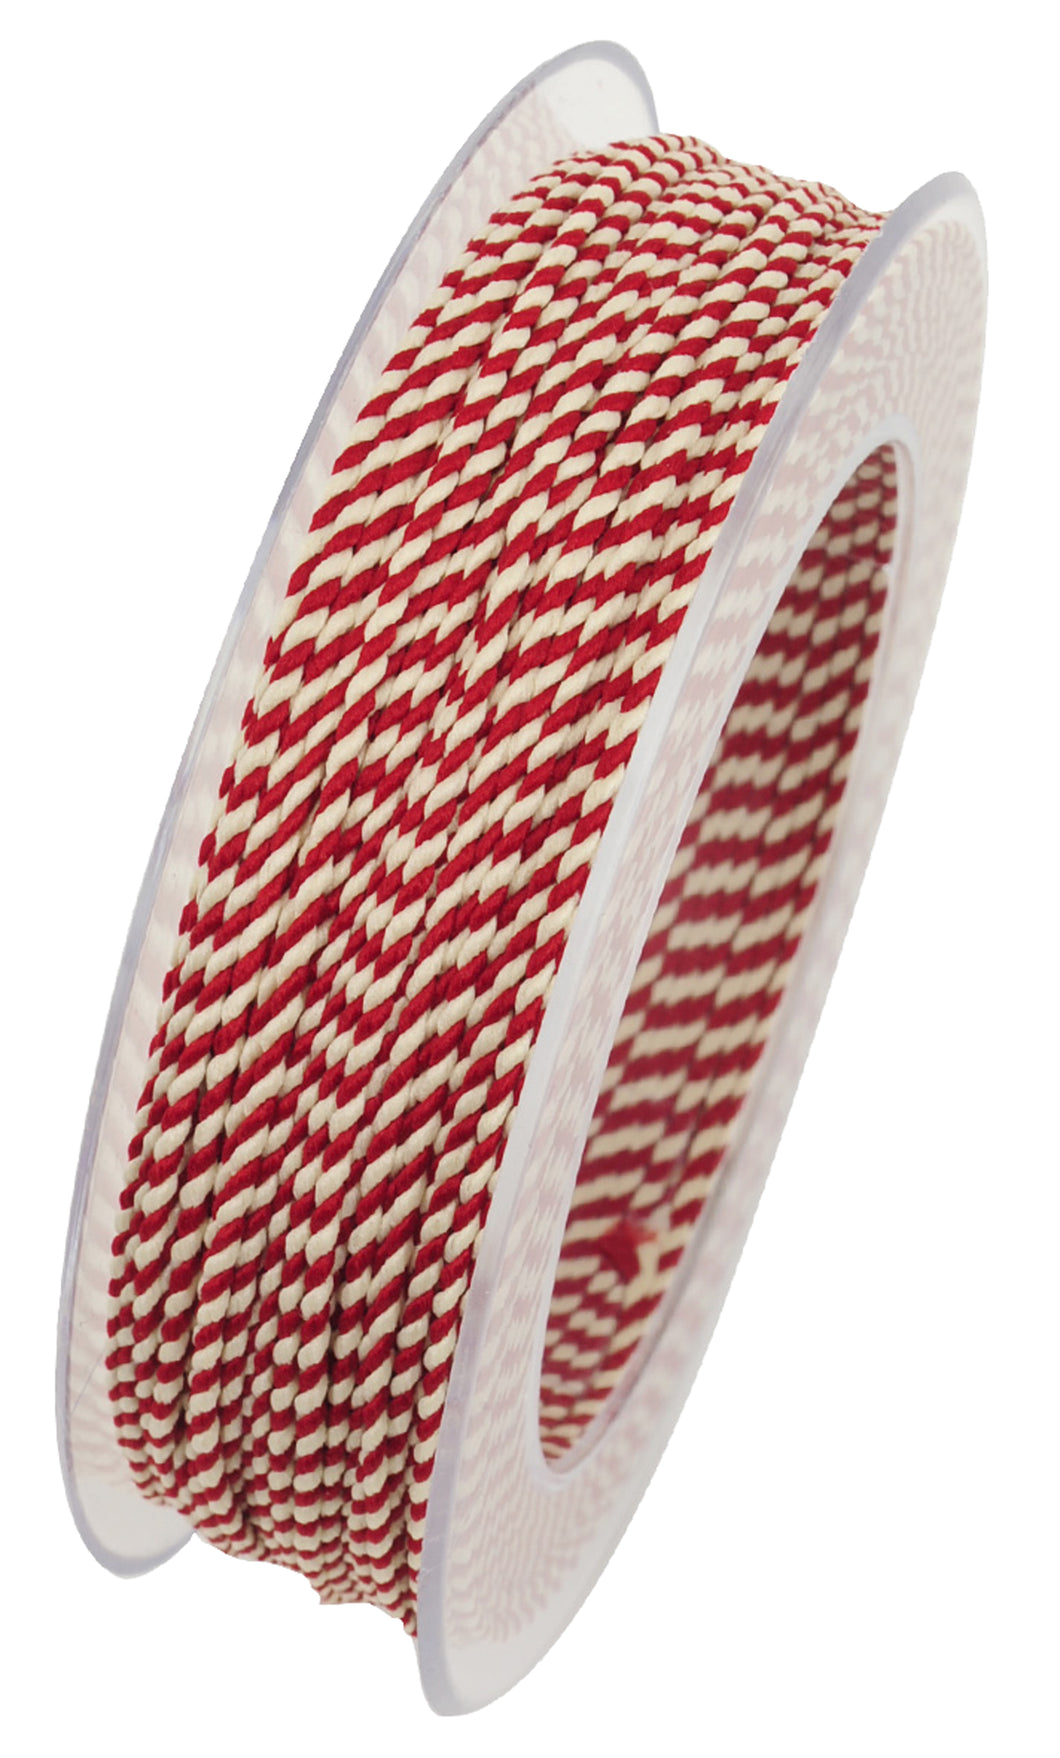 Lido ribbon in red and white (x2)